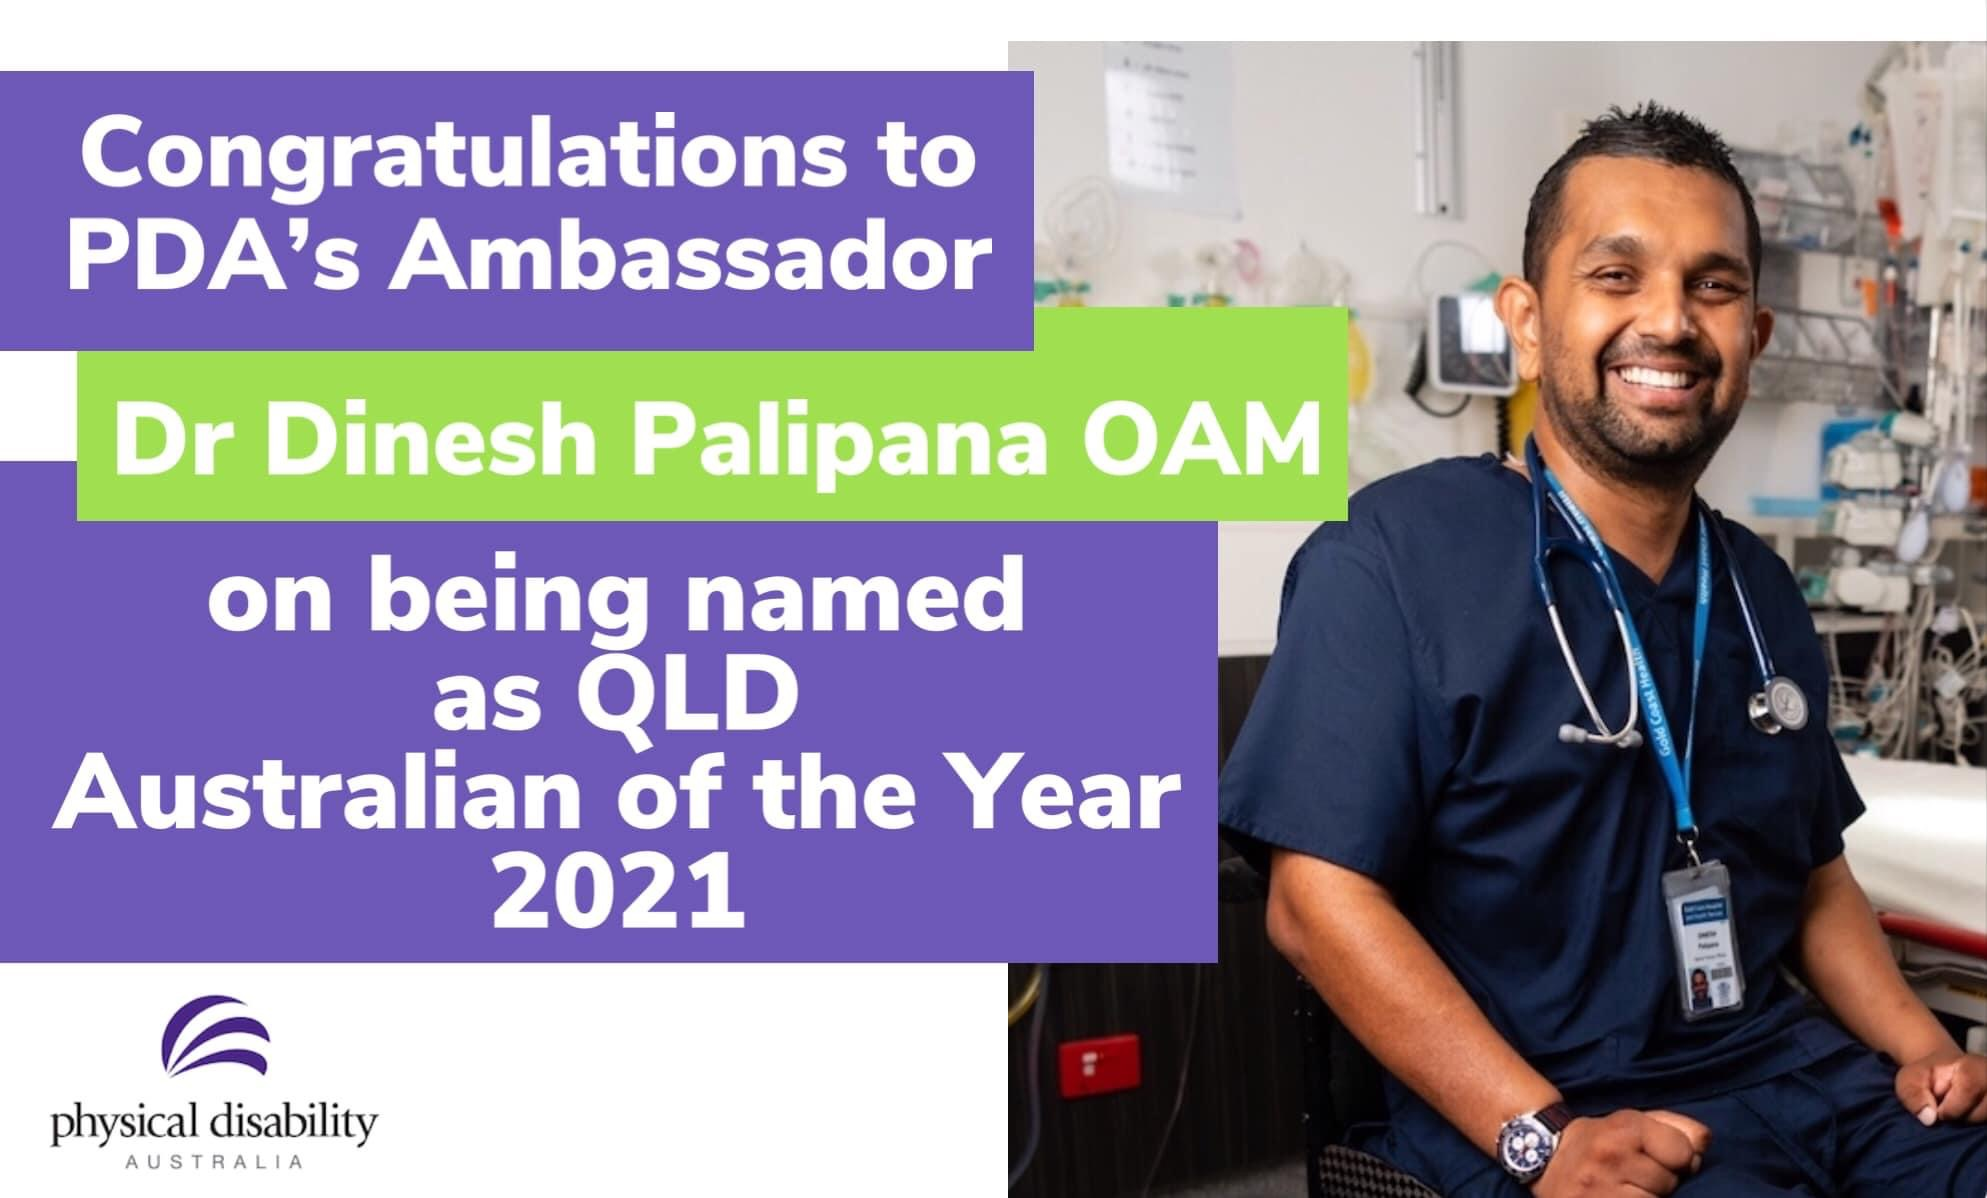 Congratulations to PDA's Ambassador, Dr Dinesh Palipana OAM, on being named as QLD Australian of the Year 2021